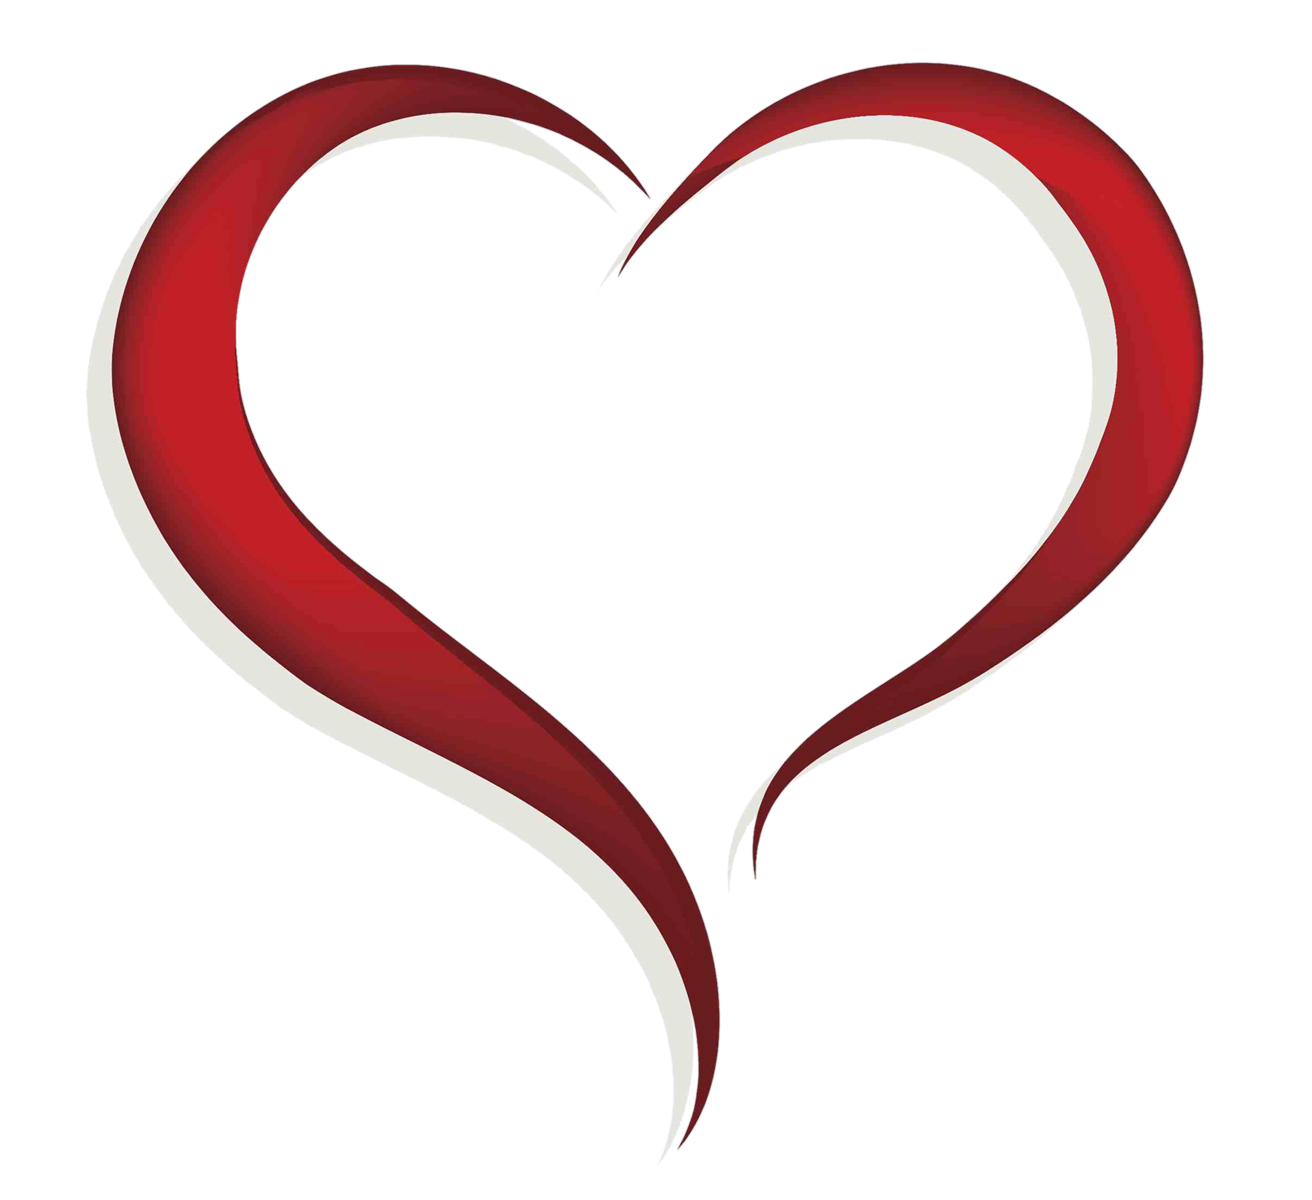 Heart clip art panda. Love clipart png graphic royalty free download